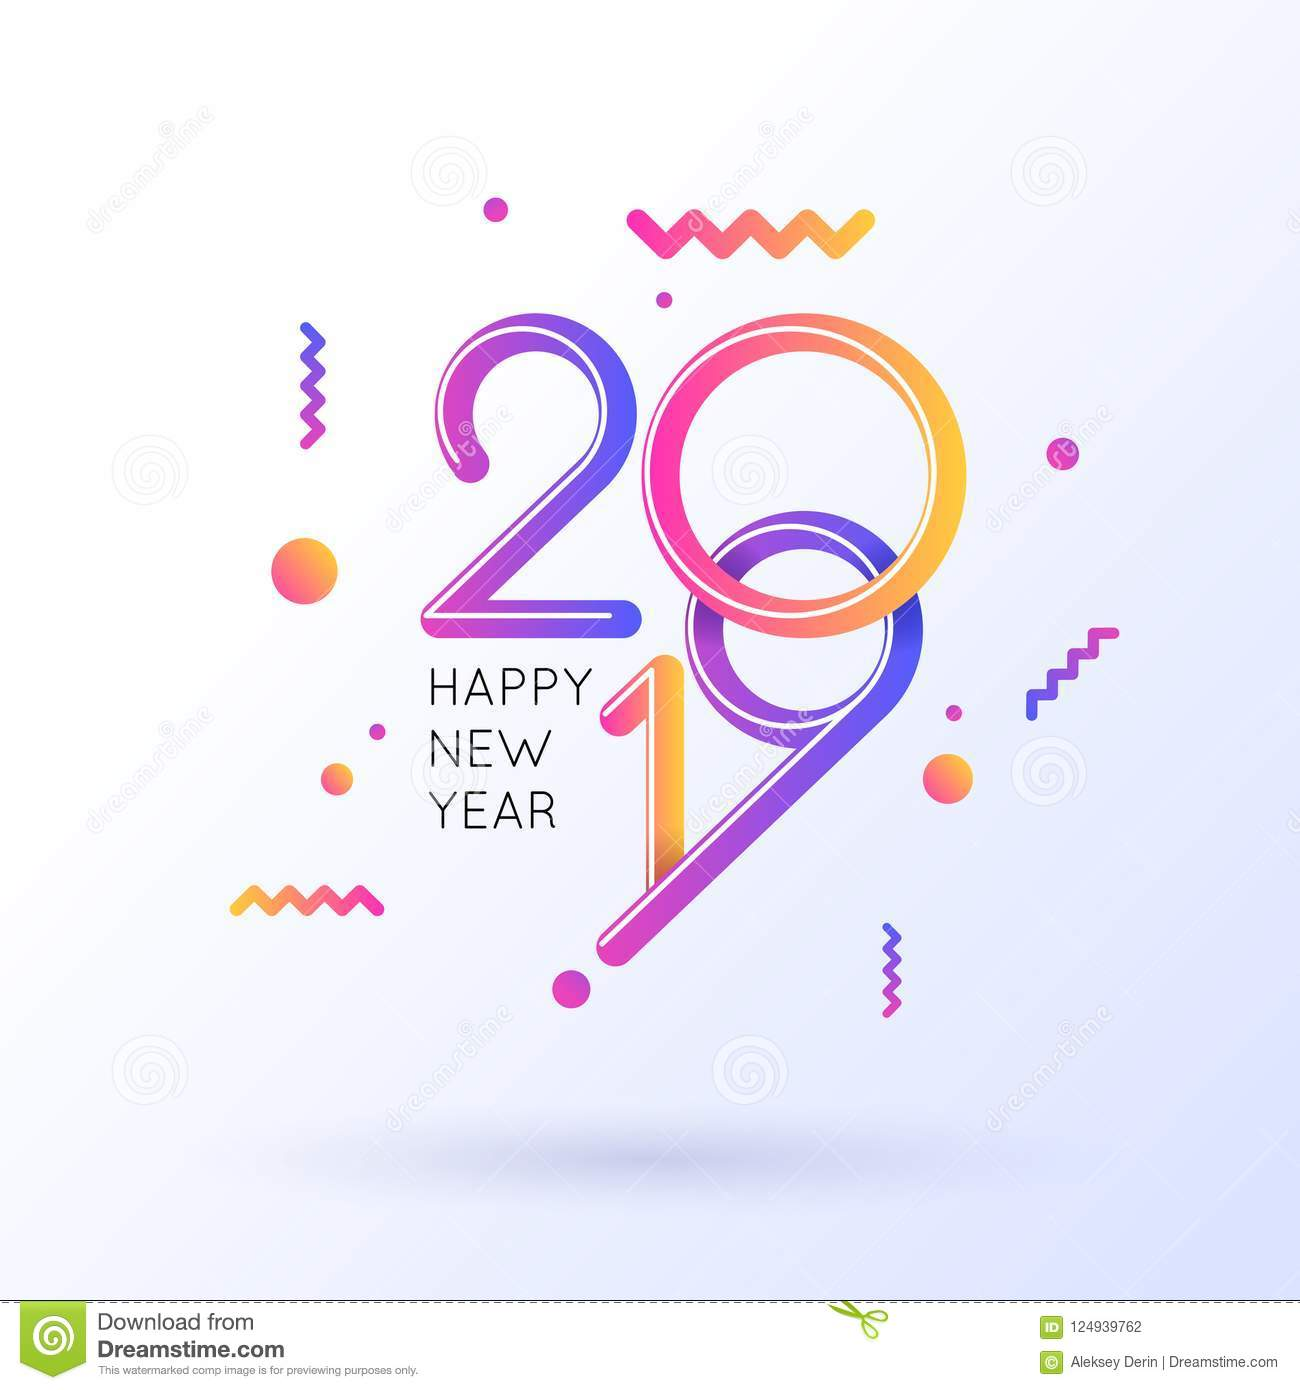 Vector Illustration Of A Happy New Year Poster 2019. Stock Vector ...